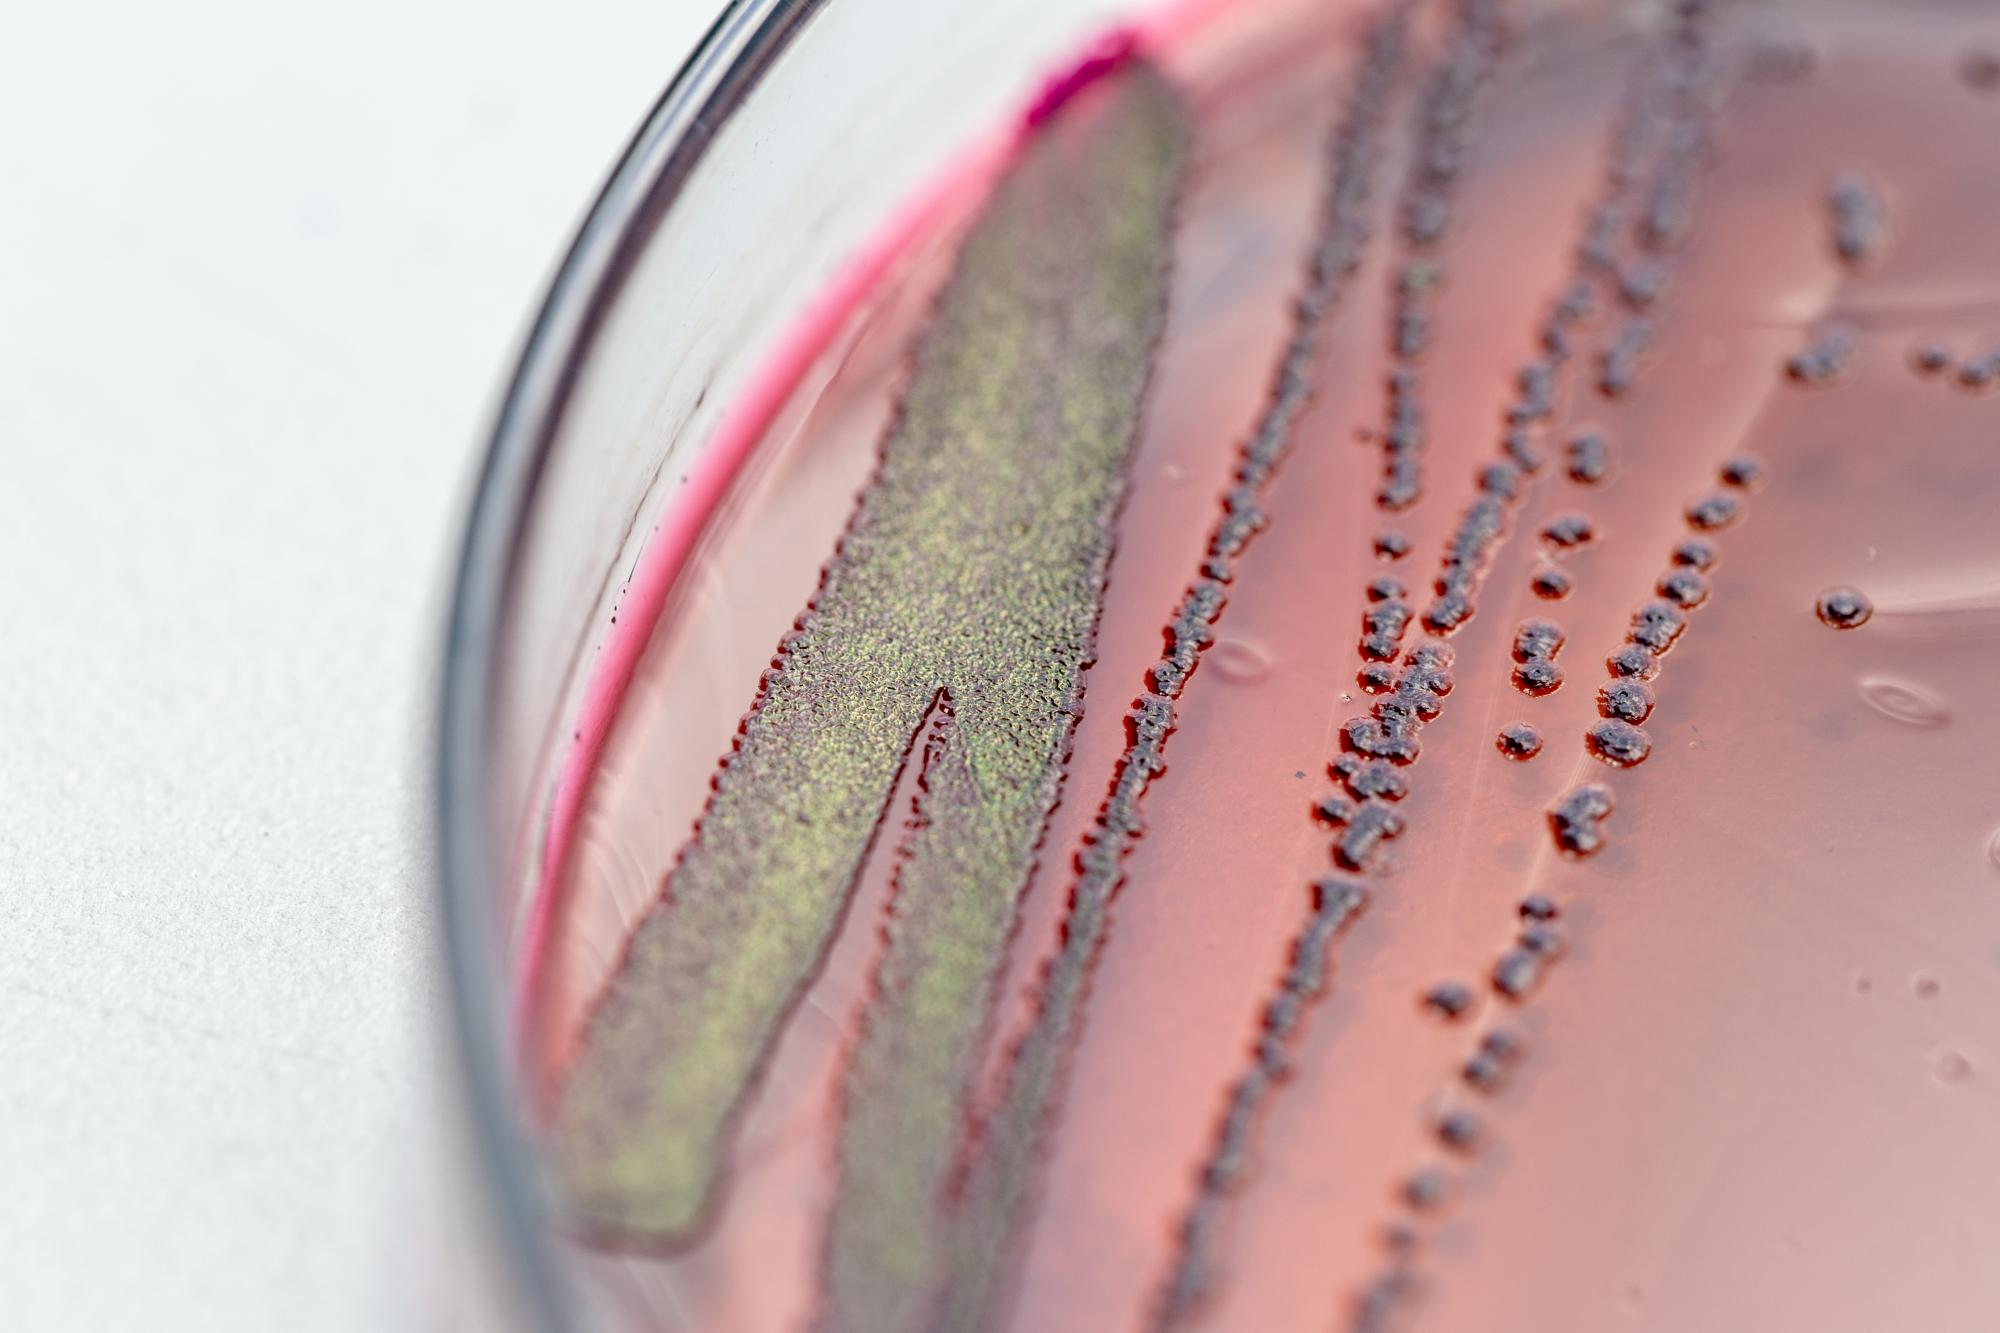 Close-up of petri dish containing bacterial colonies growing on pink agar